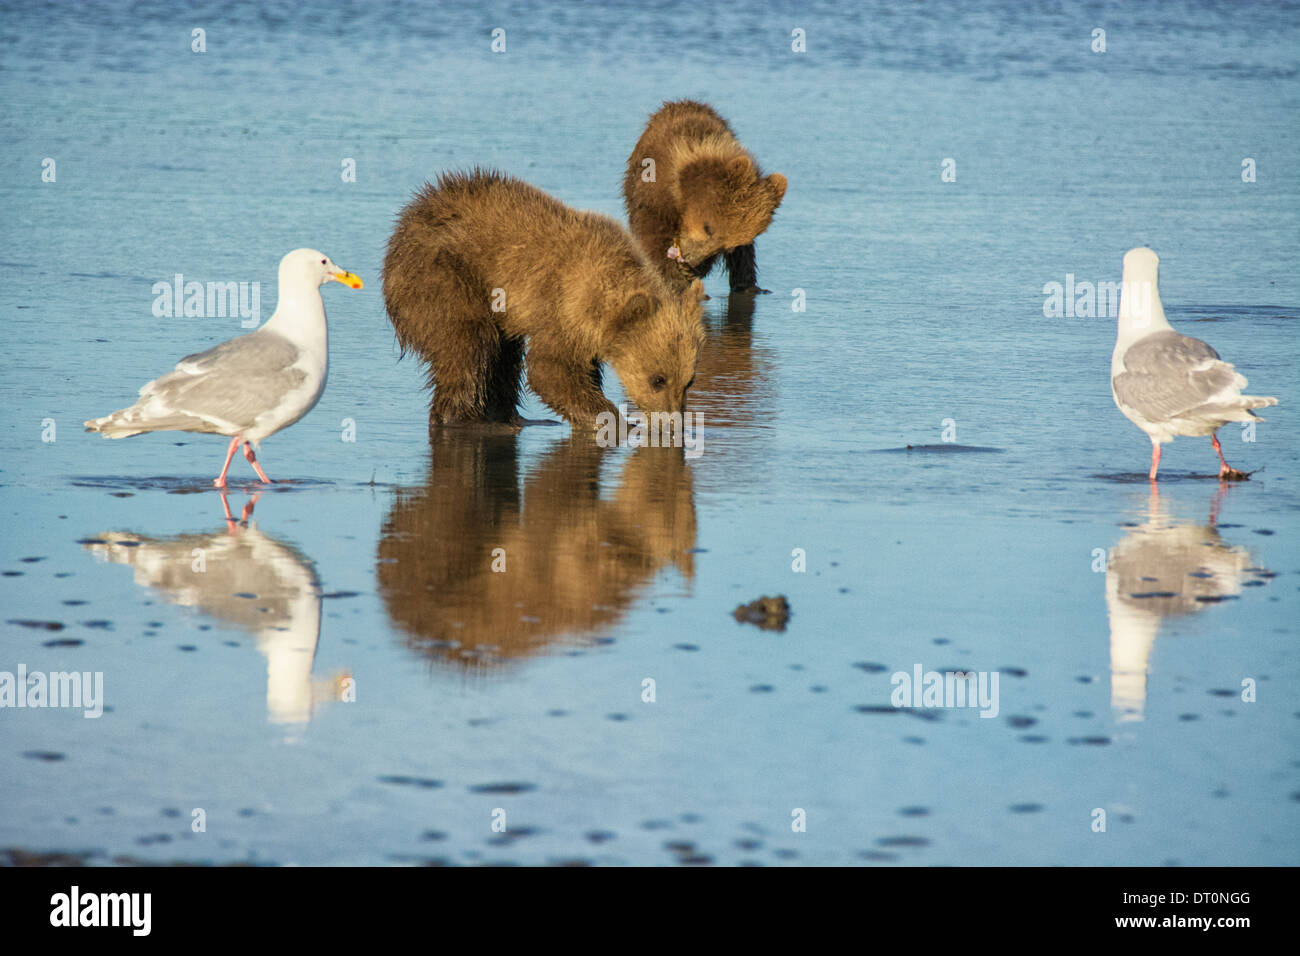 Two Grizzly Bear Spring Cubs, Ursus arctos, clamming in the tidal flats of the Cook Inlet, Alaska, USA, as Two Gulls Stock Photo